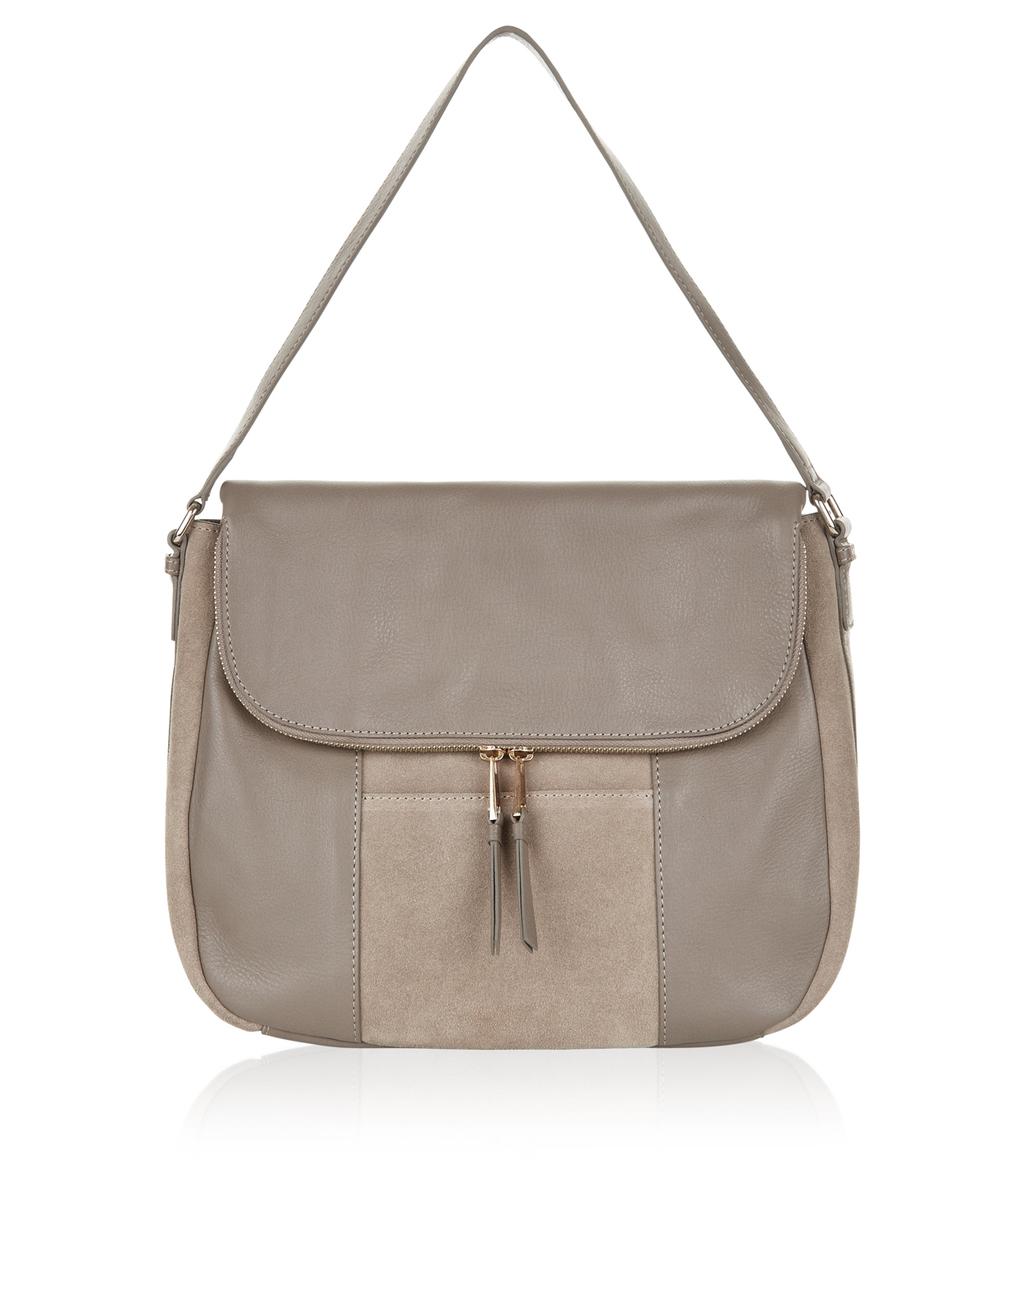 Calypso Suede And Leather Shoulder Bag - predominant colour: taupe; occasions: casual, creative work; type of pattern: standard; style: shoulder; length: shoulder (tucks under arm); size: standard; material: leather; embellishment: tassels; pattern: plain; finish: plain; season: s/s 2016; wardrobe: investment